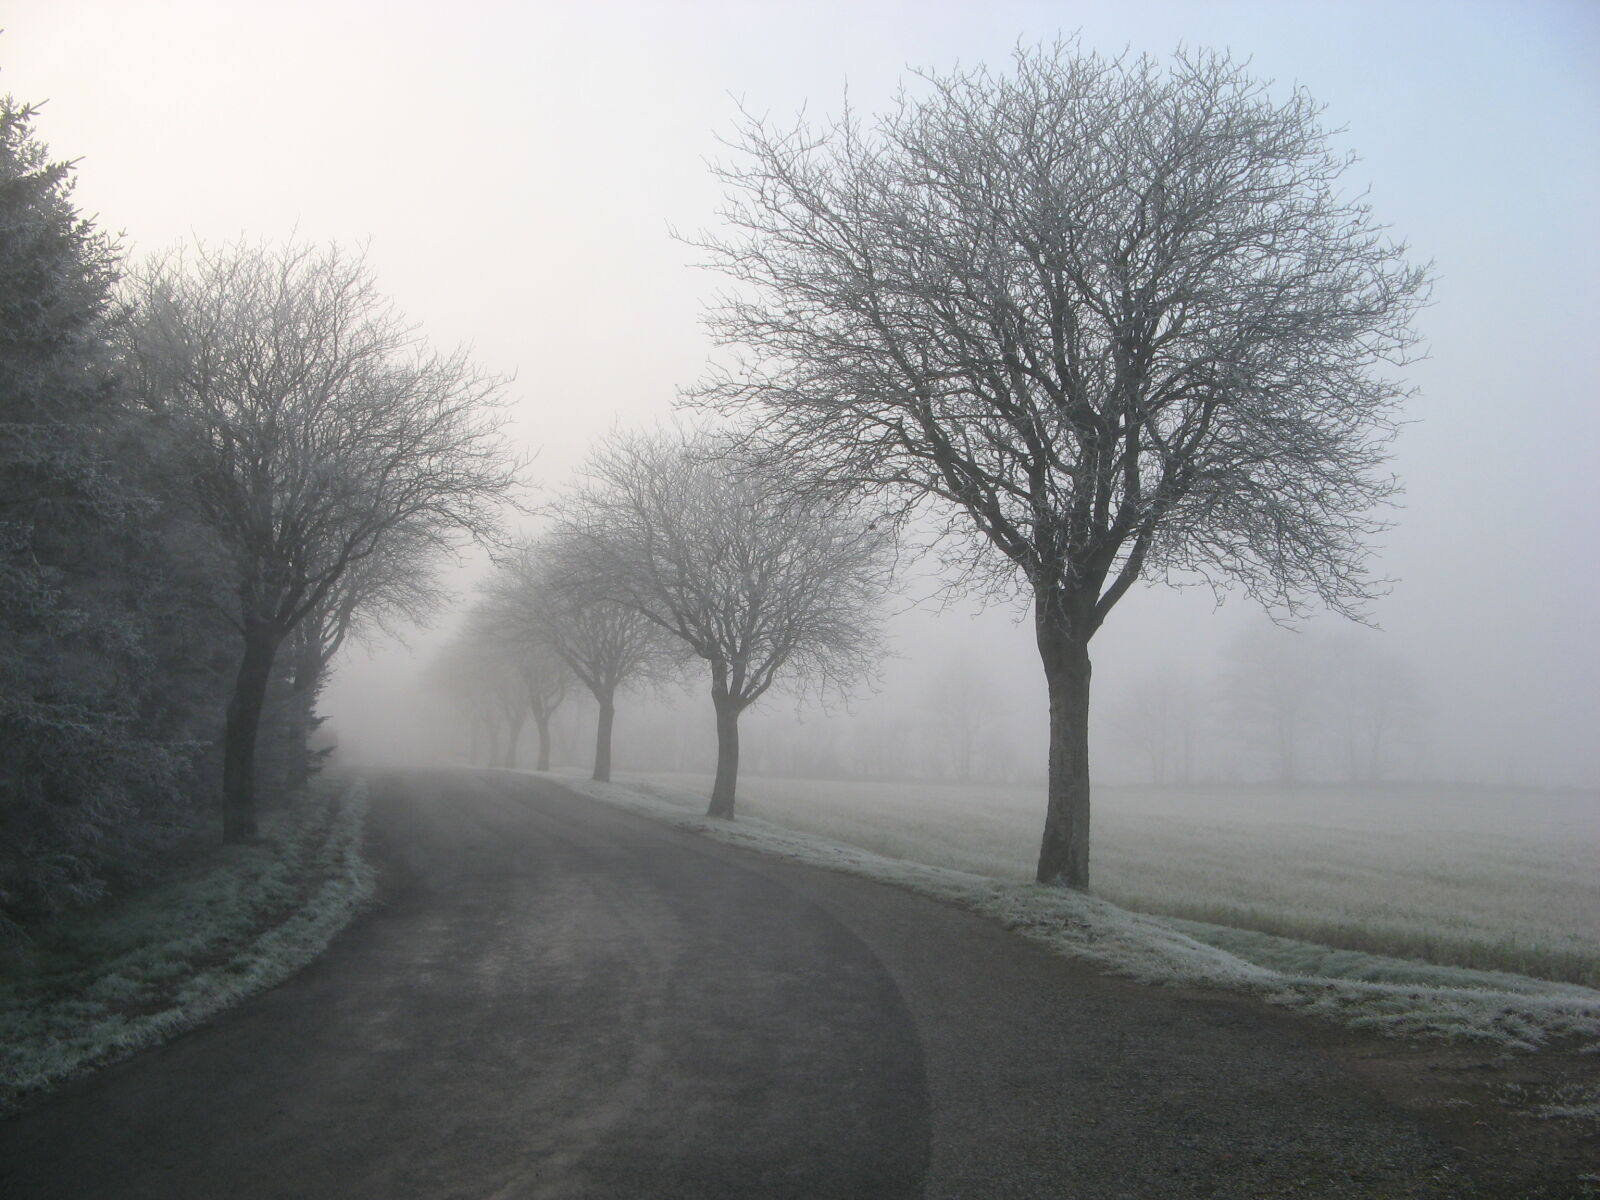 alone, cold, countryside, fog